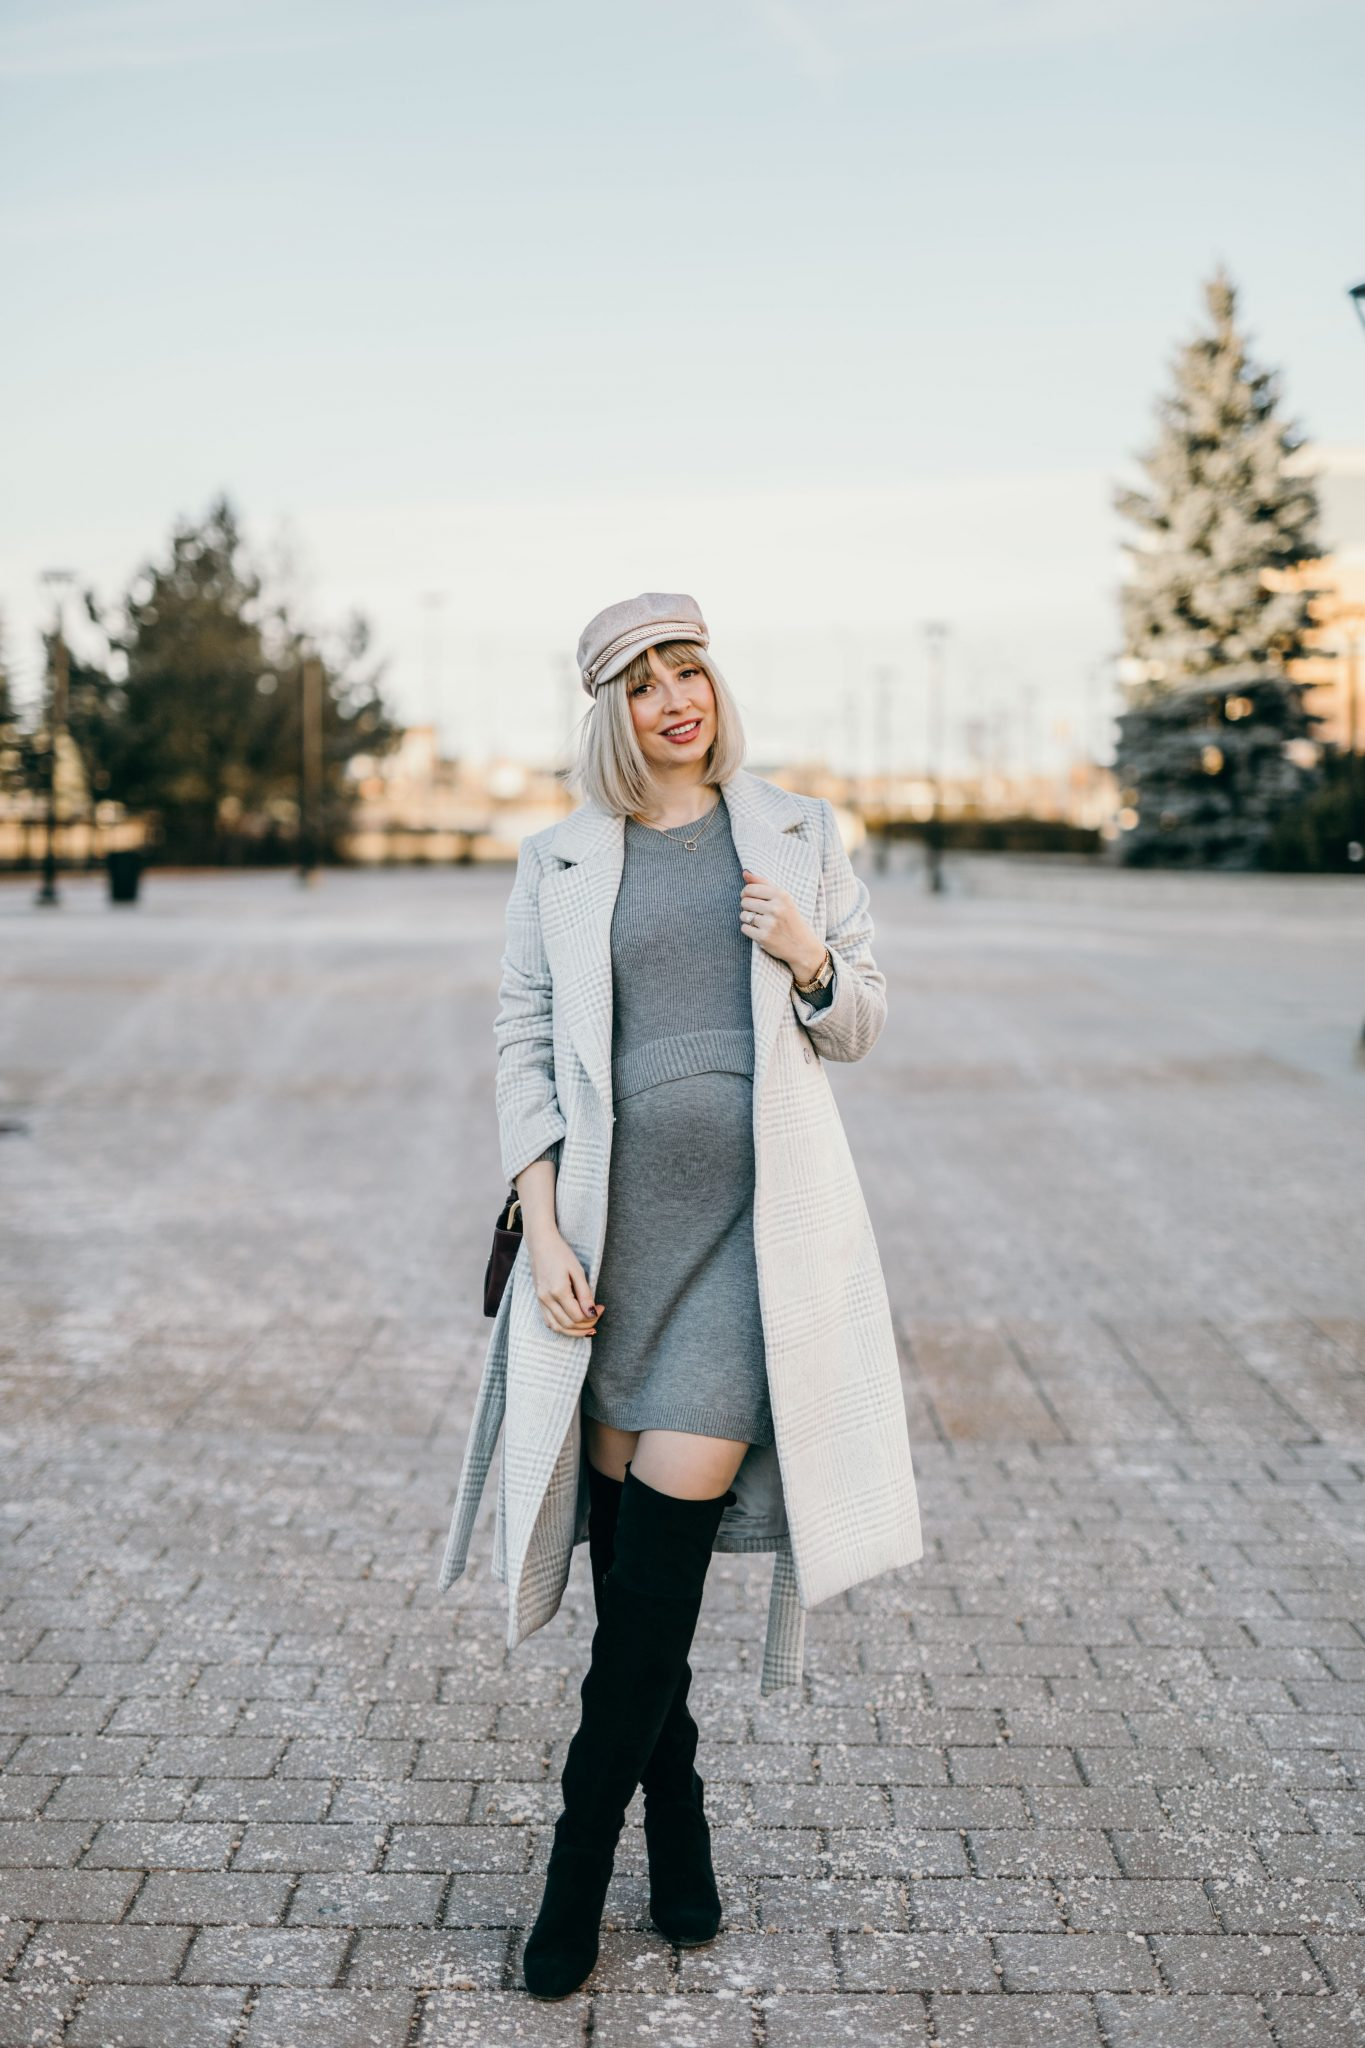 Winter Pregnancy Outfit wool coat & knit dress